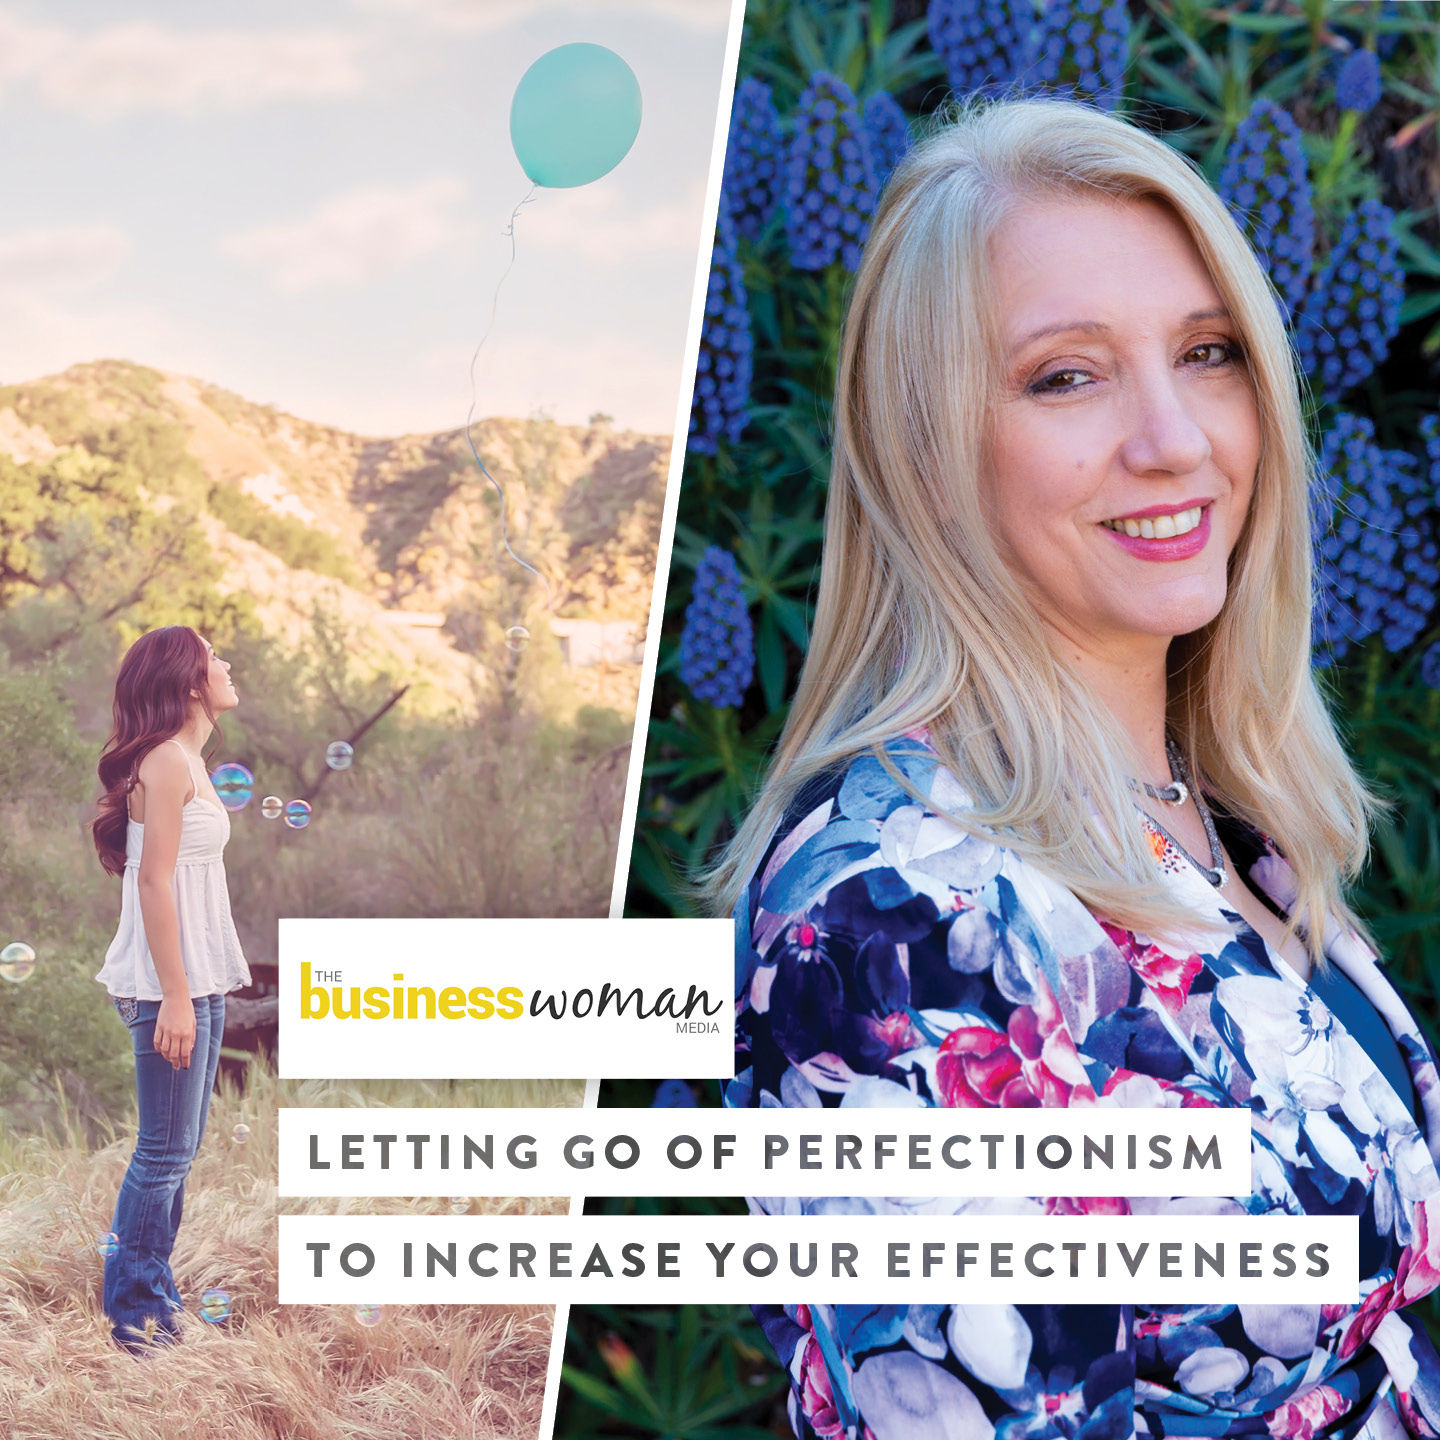 Letting go of perfectionism to increase your effectiveness